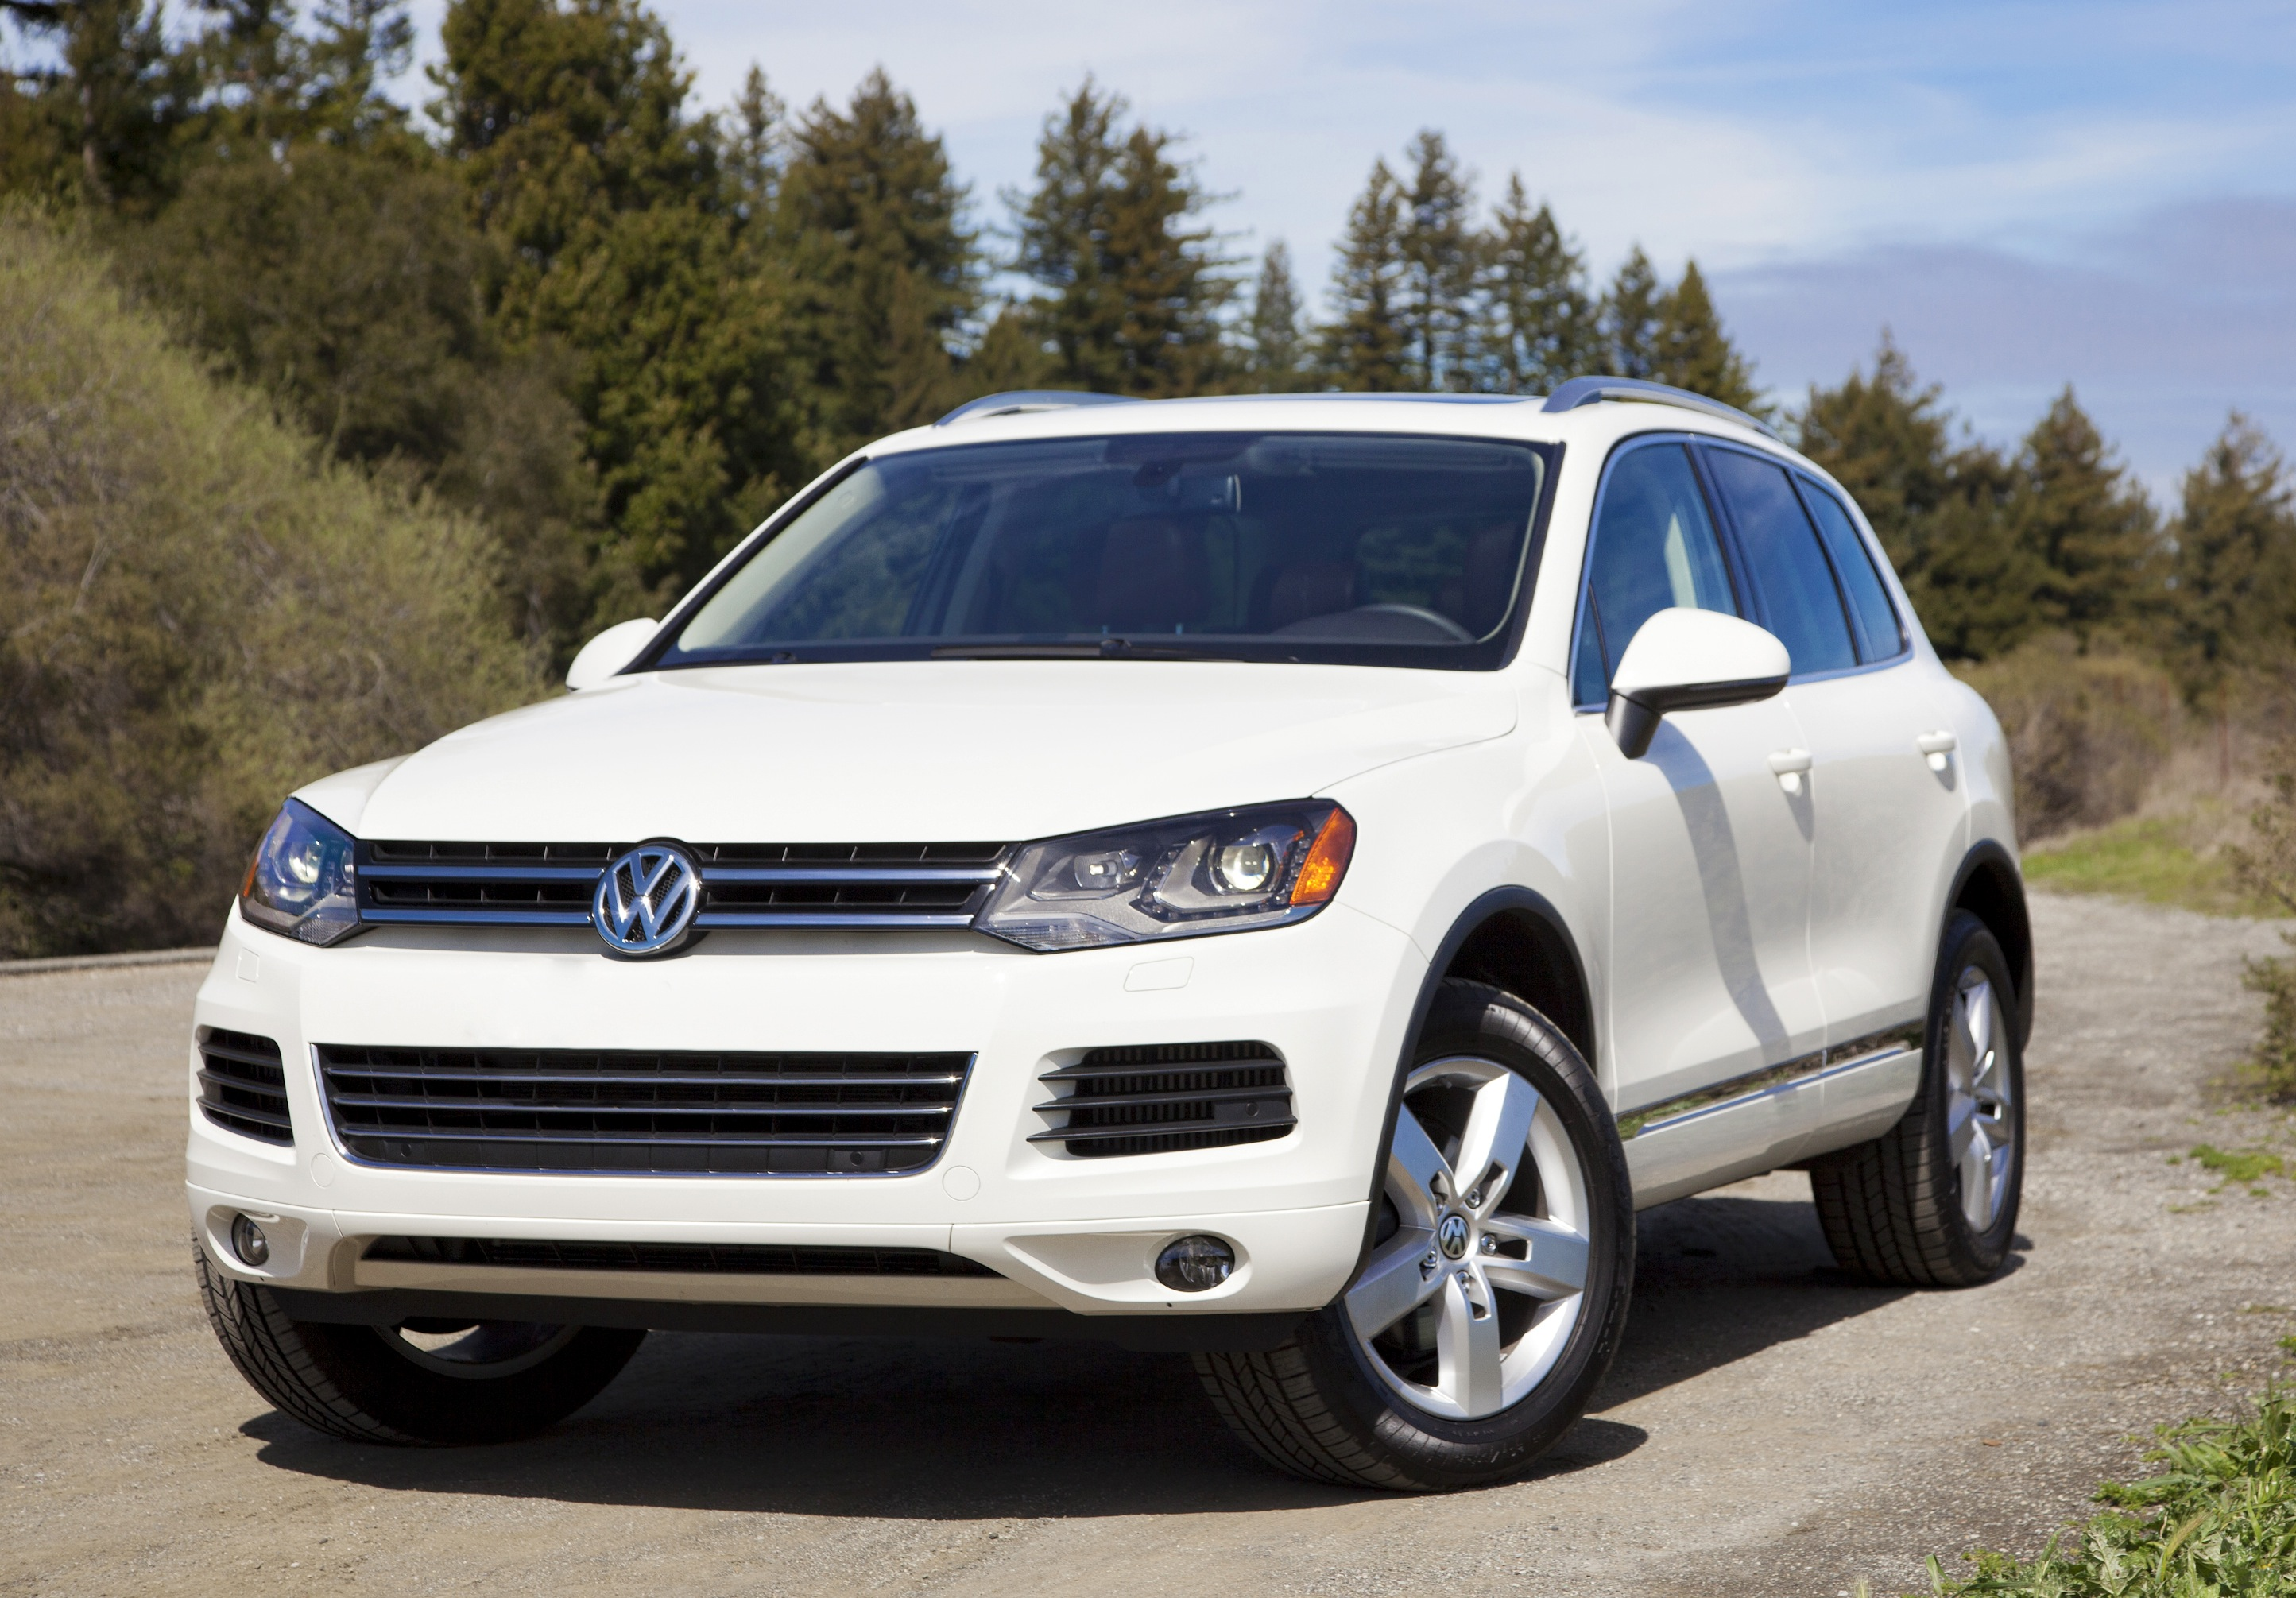 2013 volkswagen touareg vw review ratings specs prices and photos the car connection. Black Bedroom Furniture Sets. Home Design Ideas